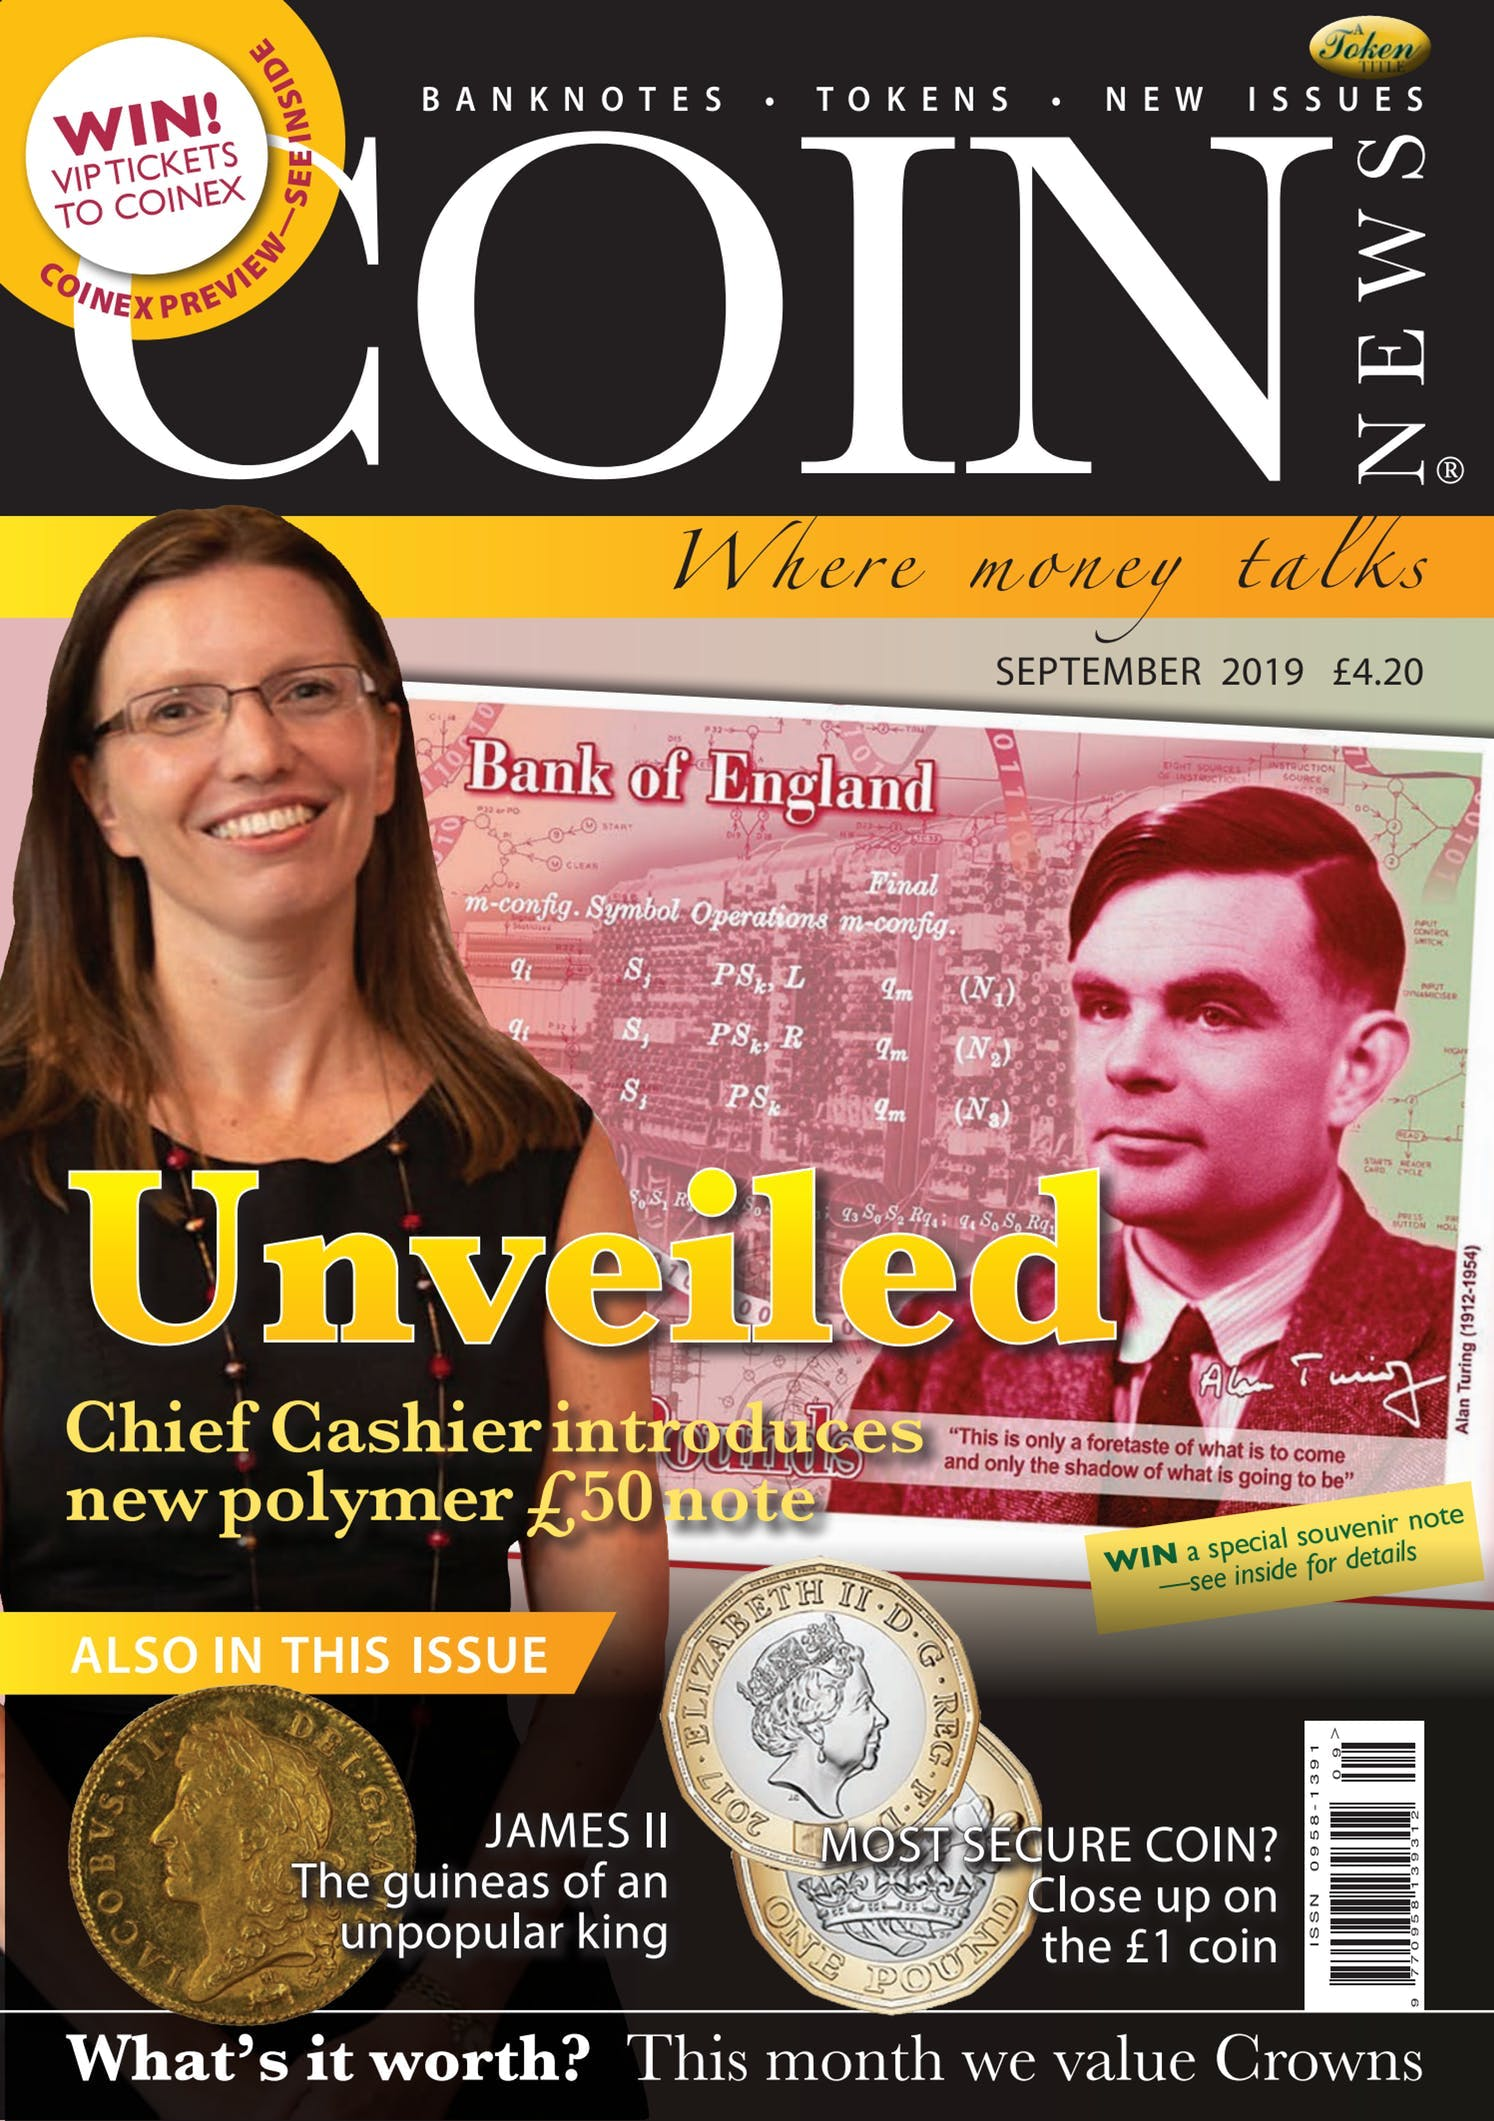 The front cover of Coin News, September 2019 - Volume 56, Number 9